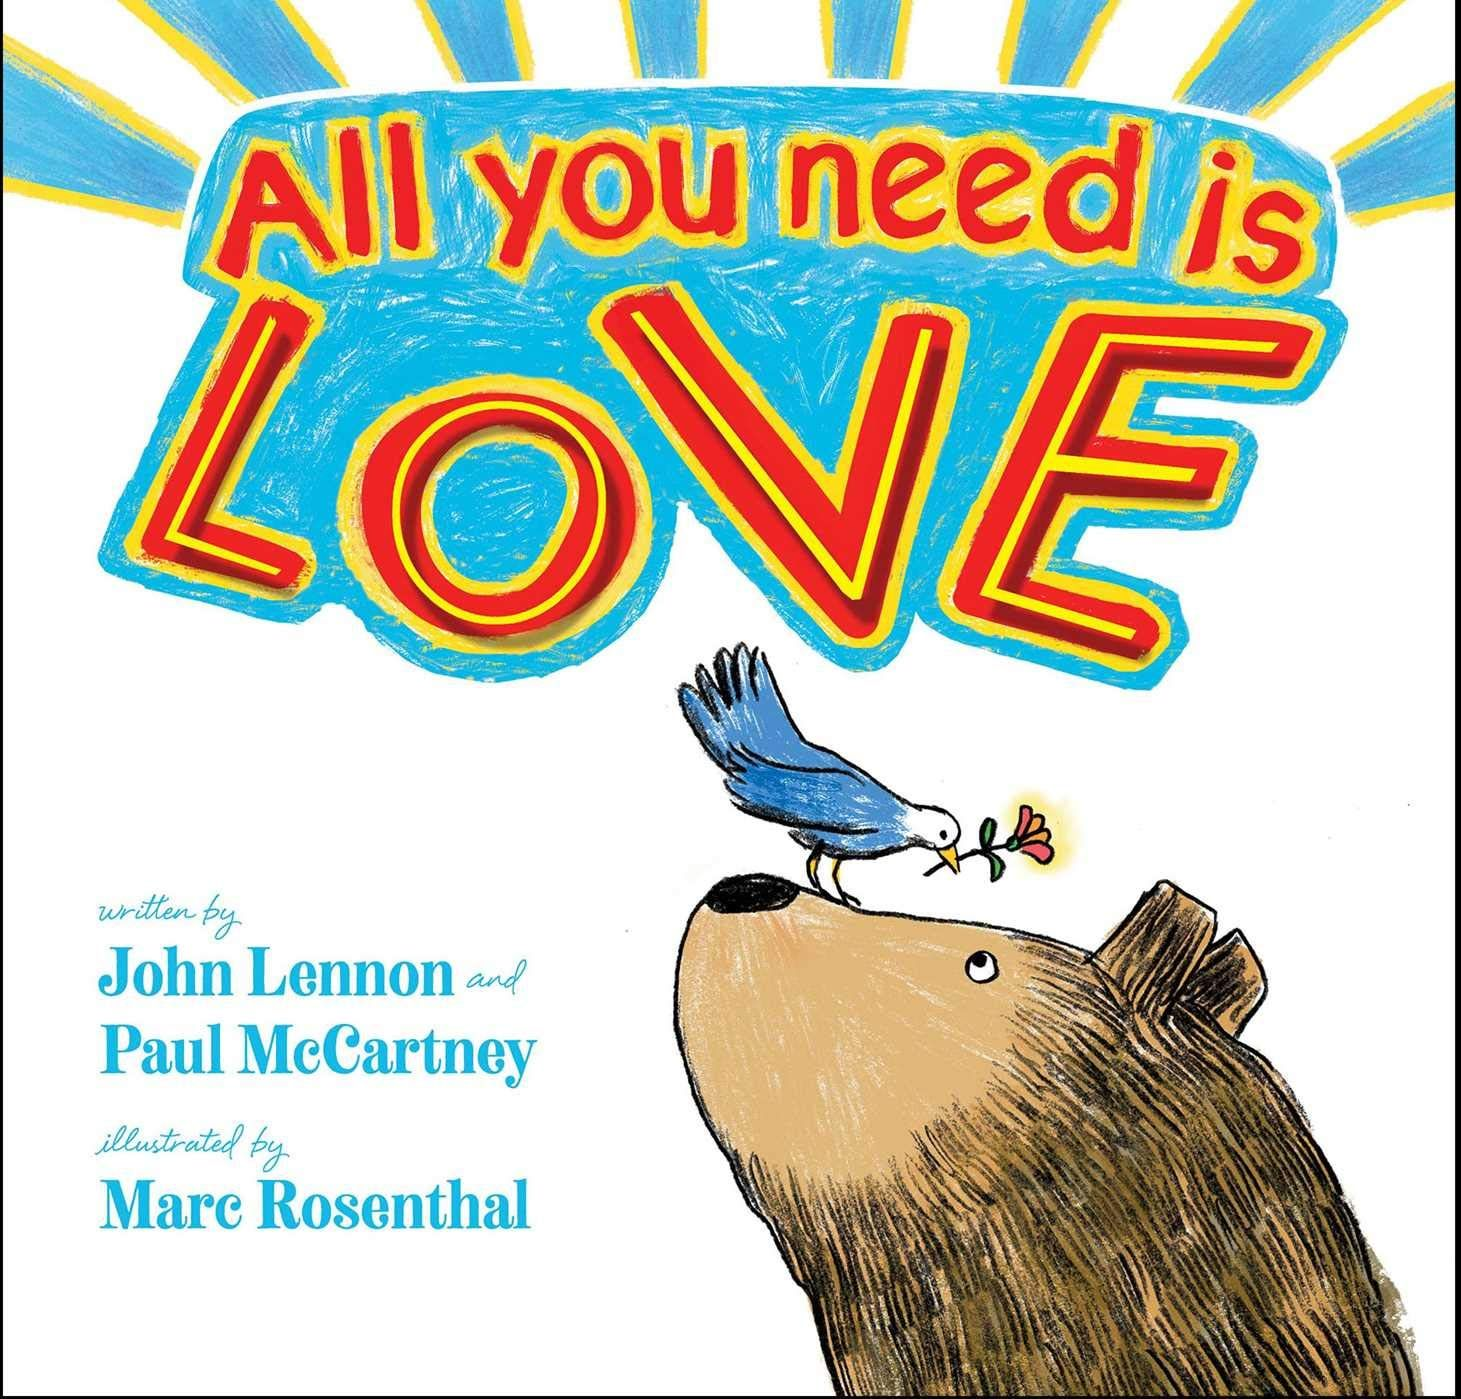 All you need is love hardcover january 29 2019